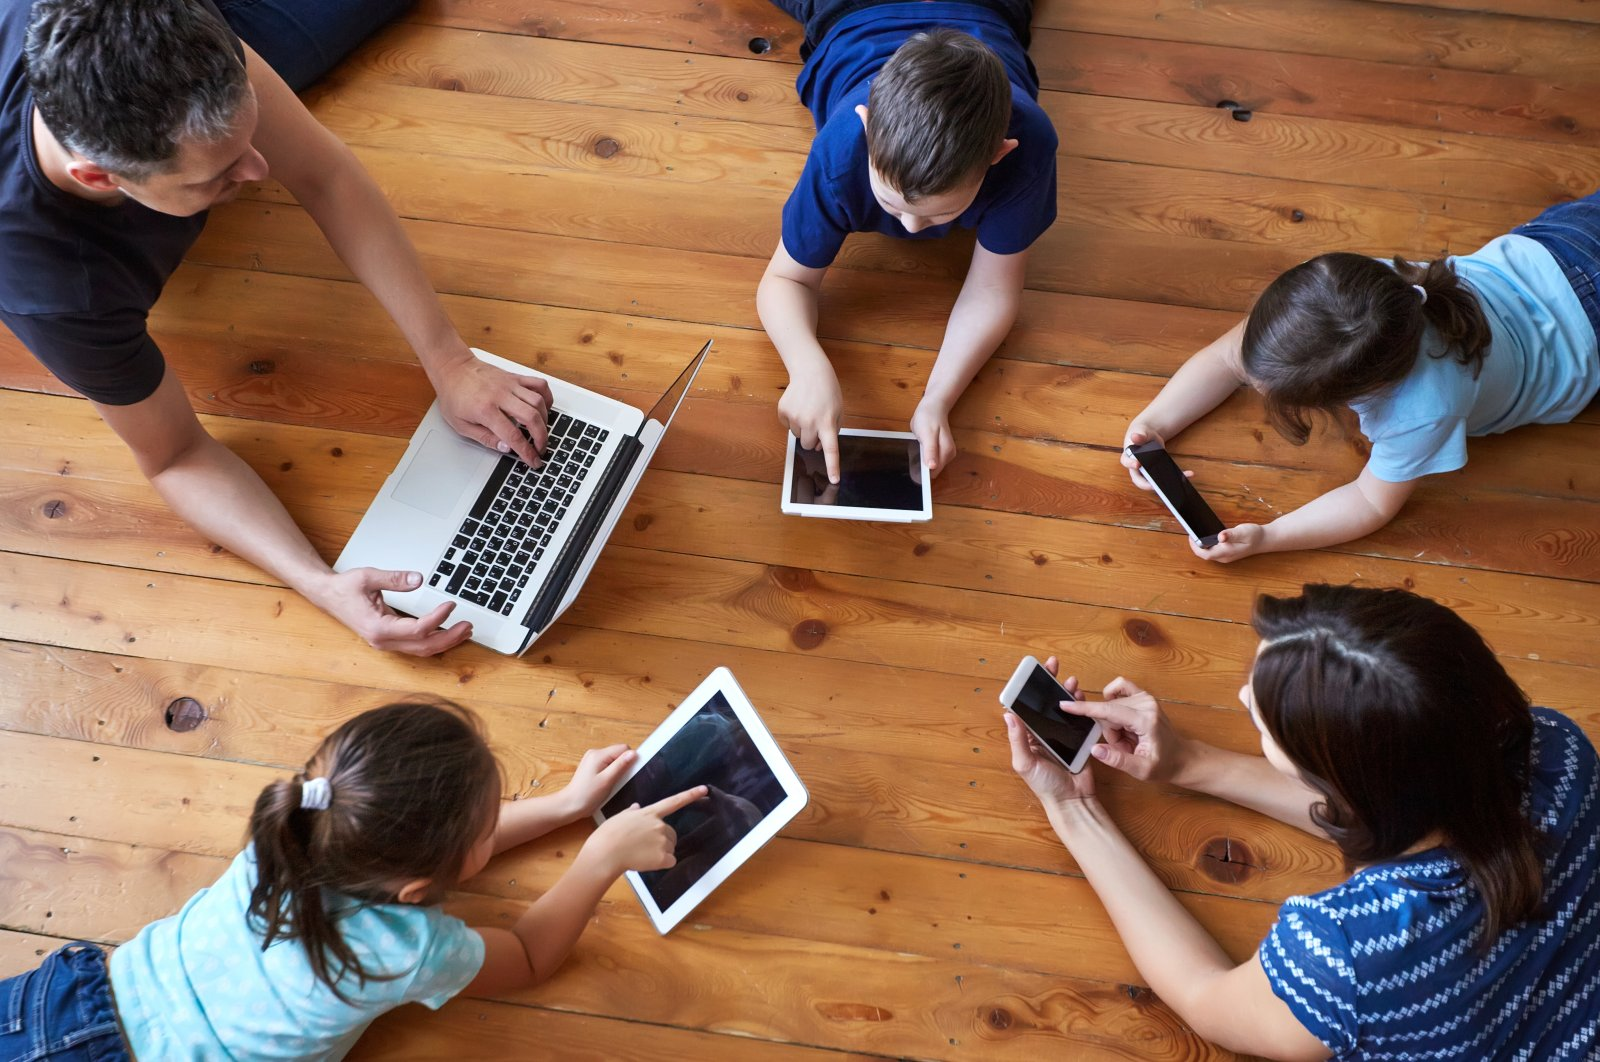 The pandemic has inflicted a new lifestyle of dependence on technology, including higher consumption of the internet and more screen time. (Shutterstock)